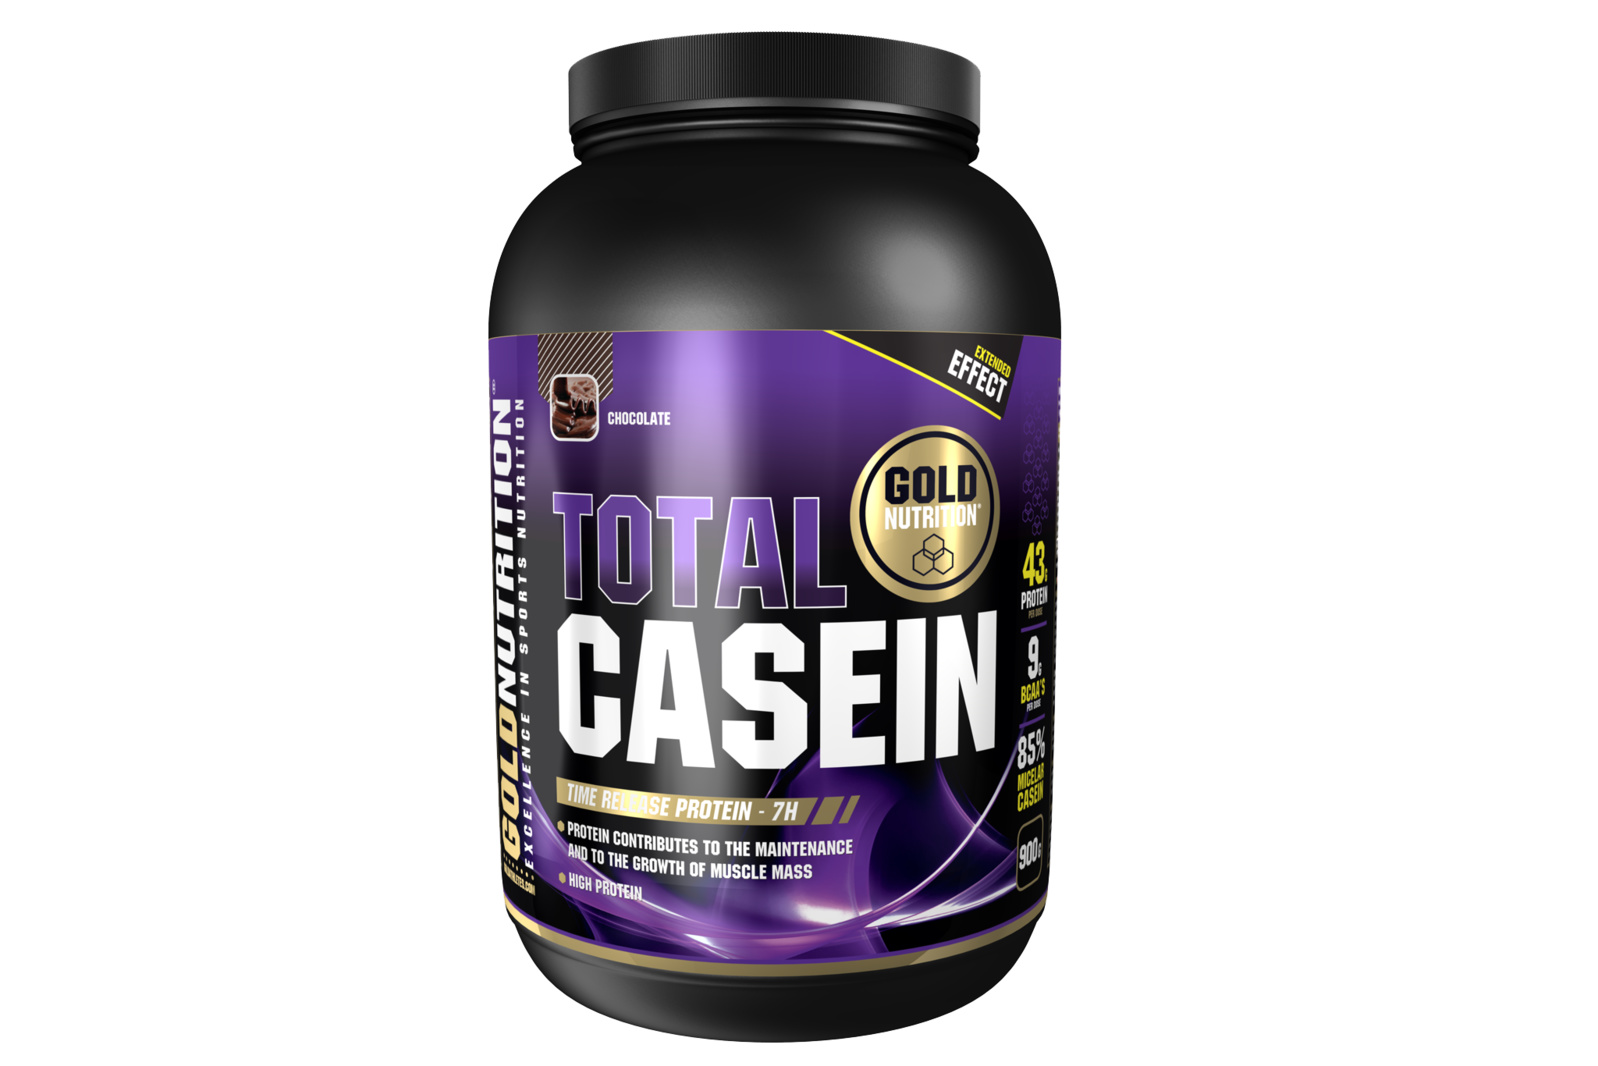 GOLDNUTRITION TOTAL CASEIN CIOCOLATA 900 G